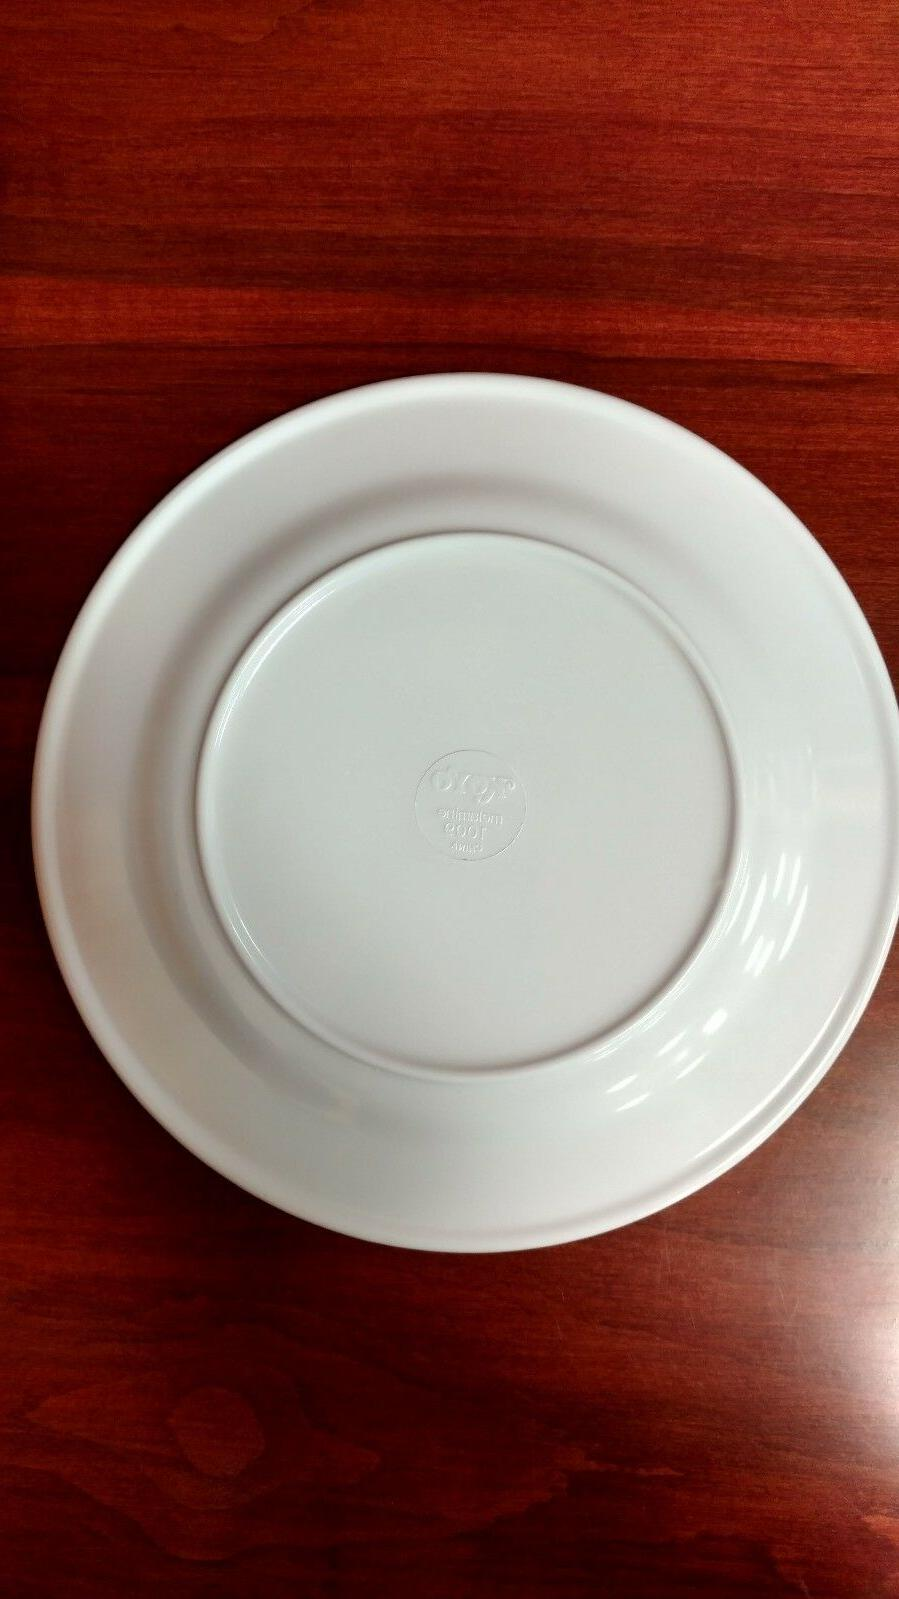 Brand 9 Melamine Dinner Plates Rose Design Shipping